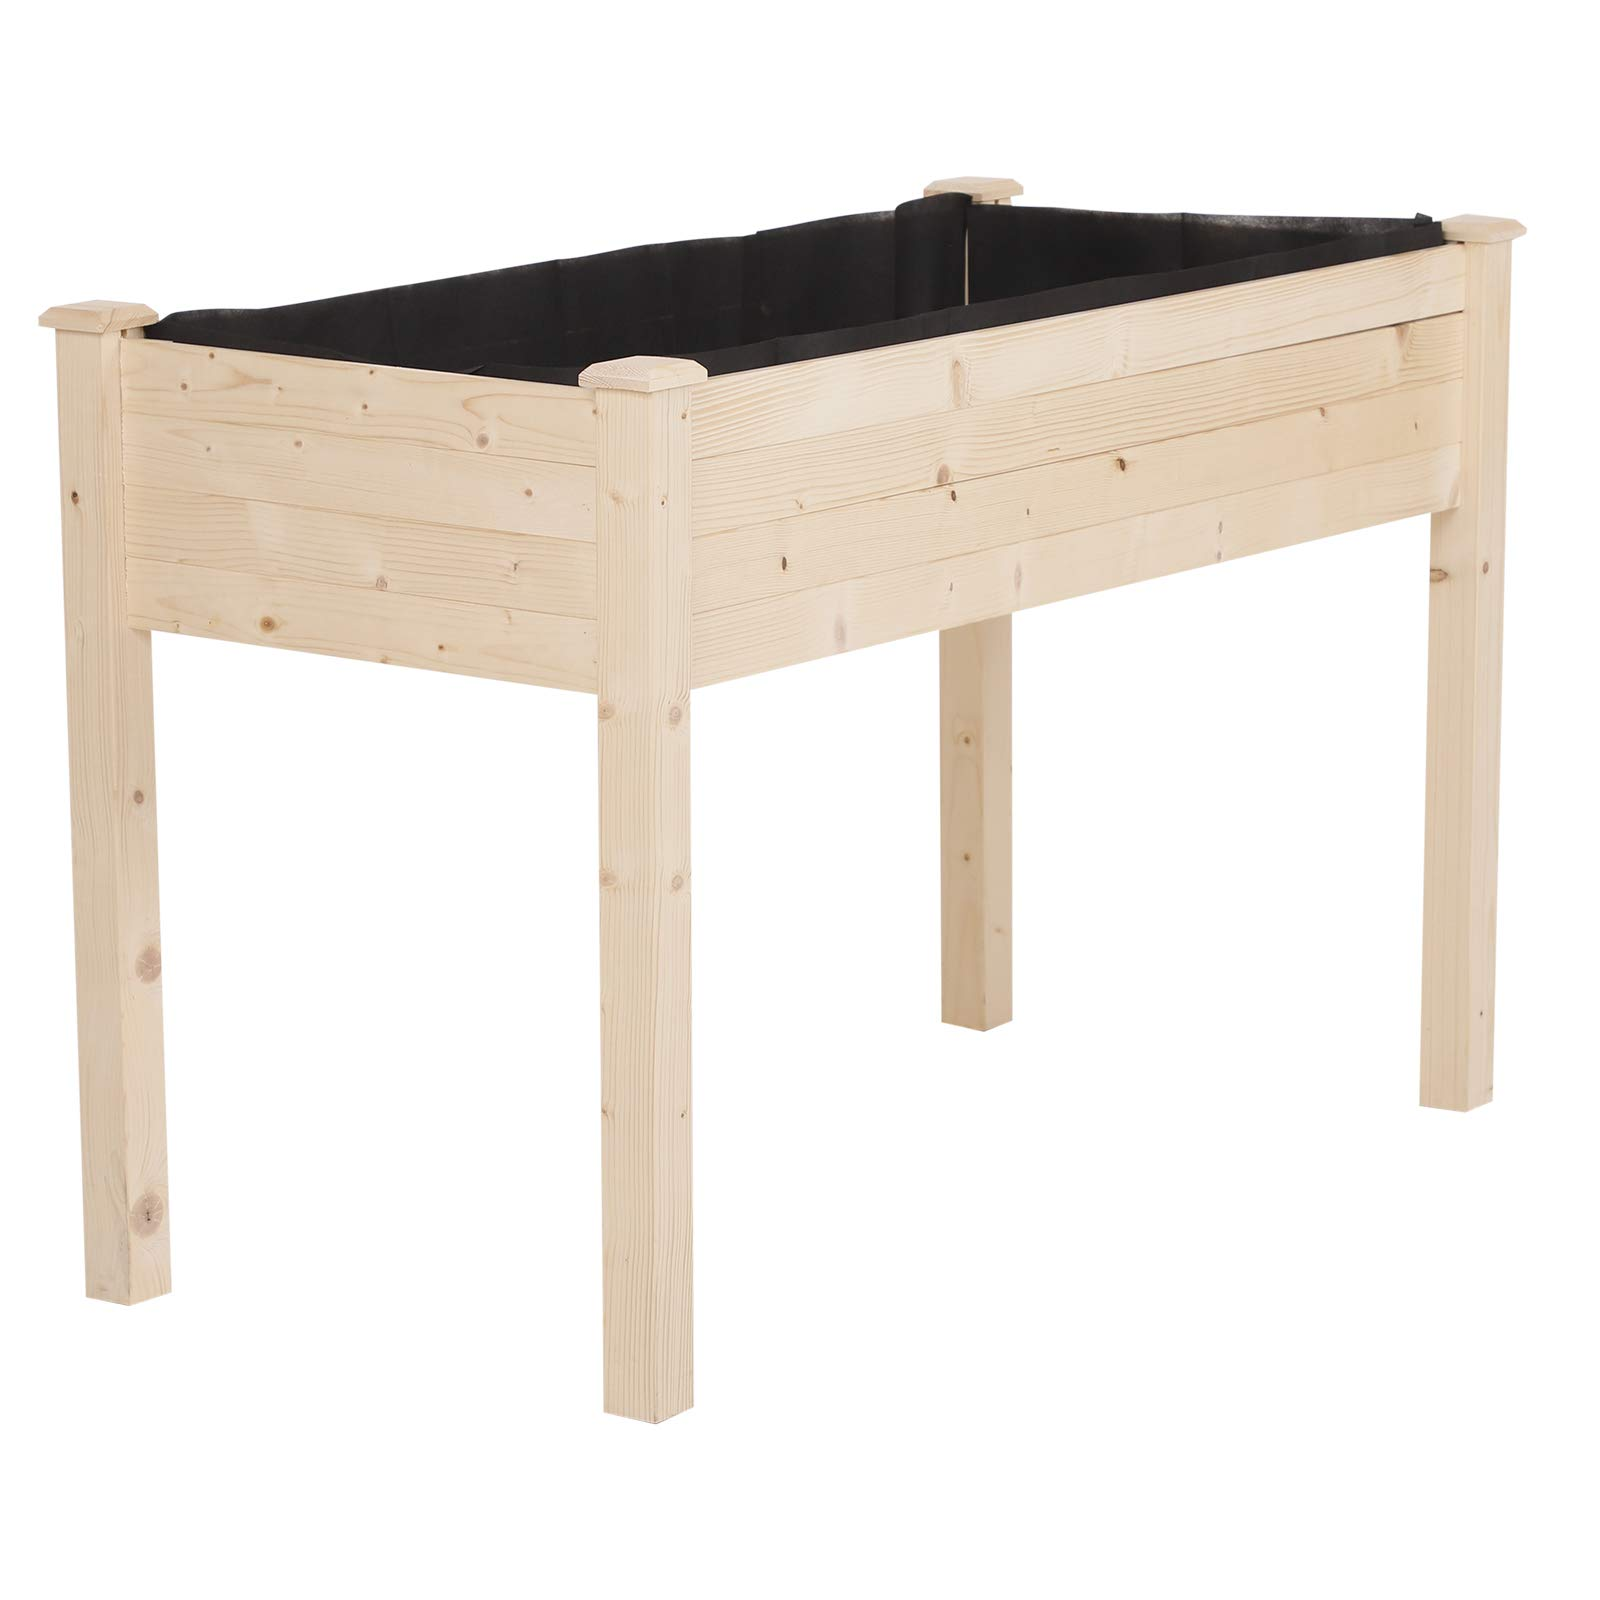 Outsunny Garden Wood Raised Elevated Bed 48x22x30in Vegetable Planter Outdoor